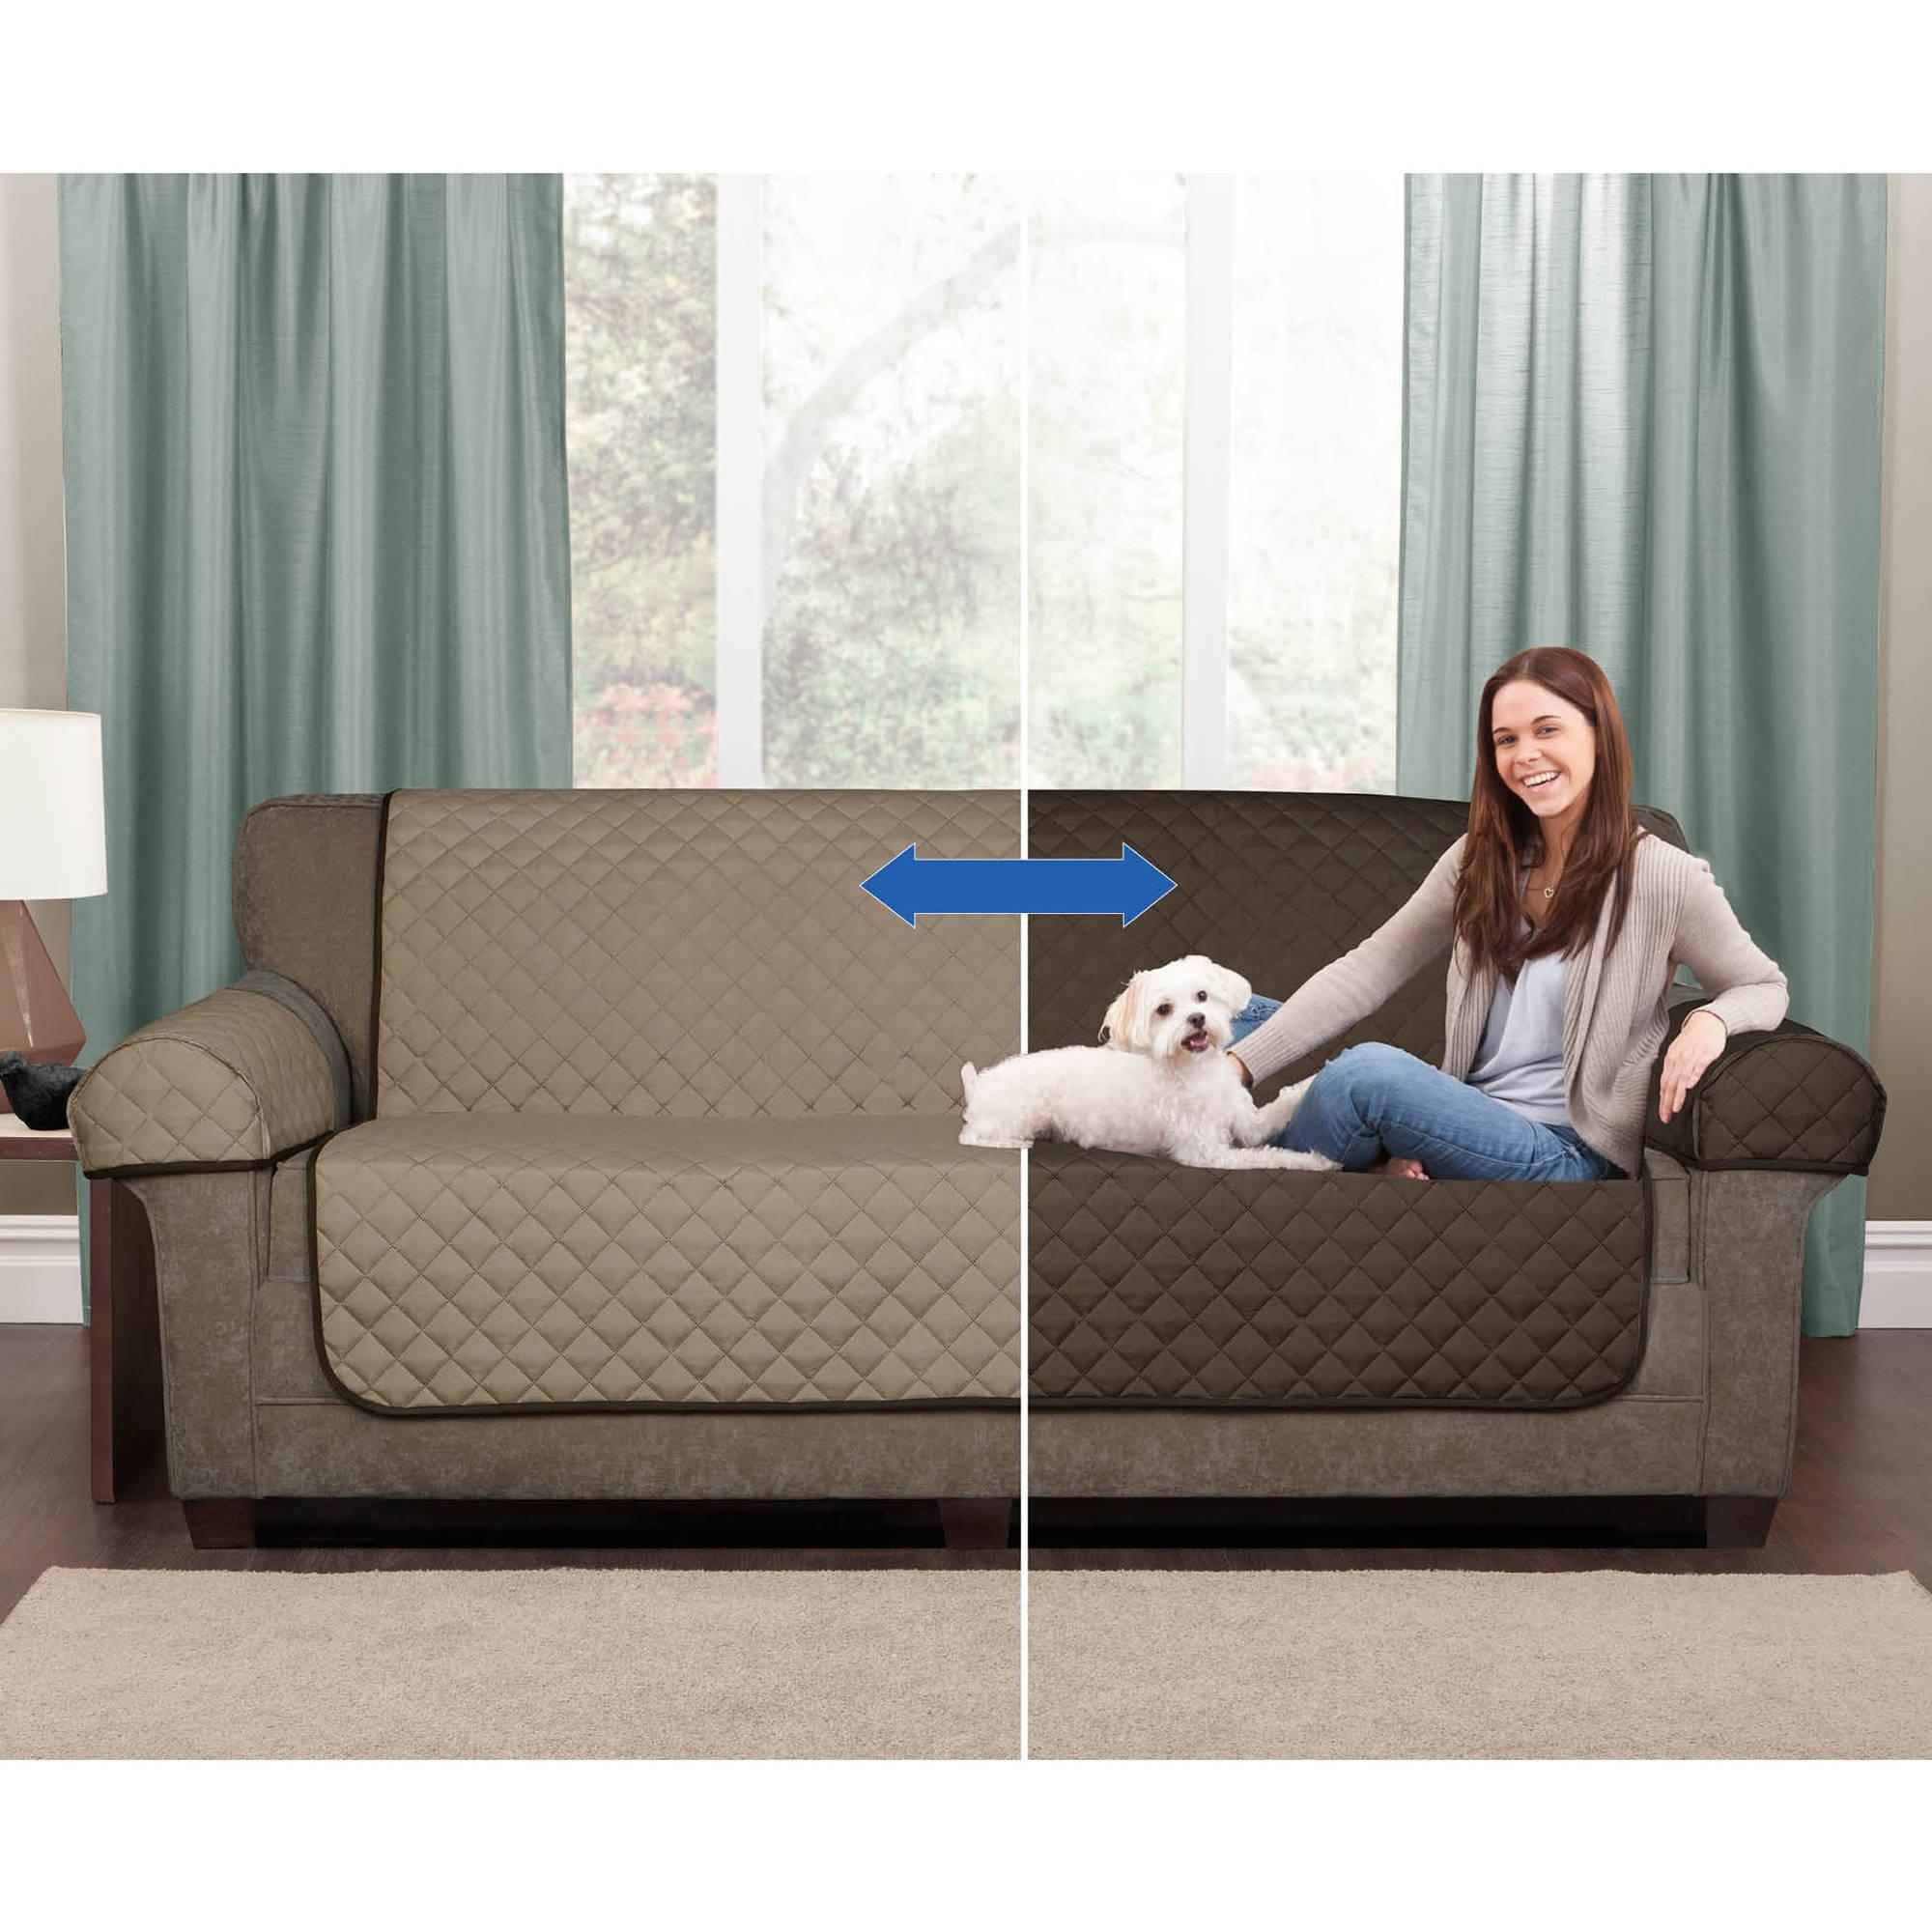 Pet Furniture Covers Regarding Pet Proof Sofa Covers (View 16 of 20)